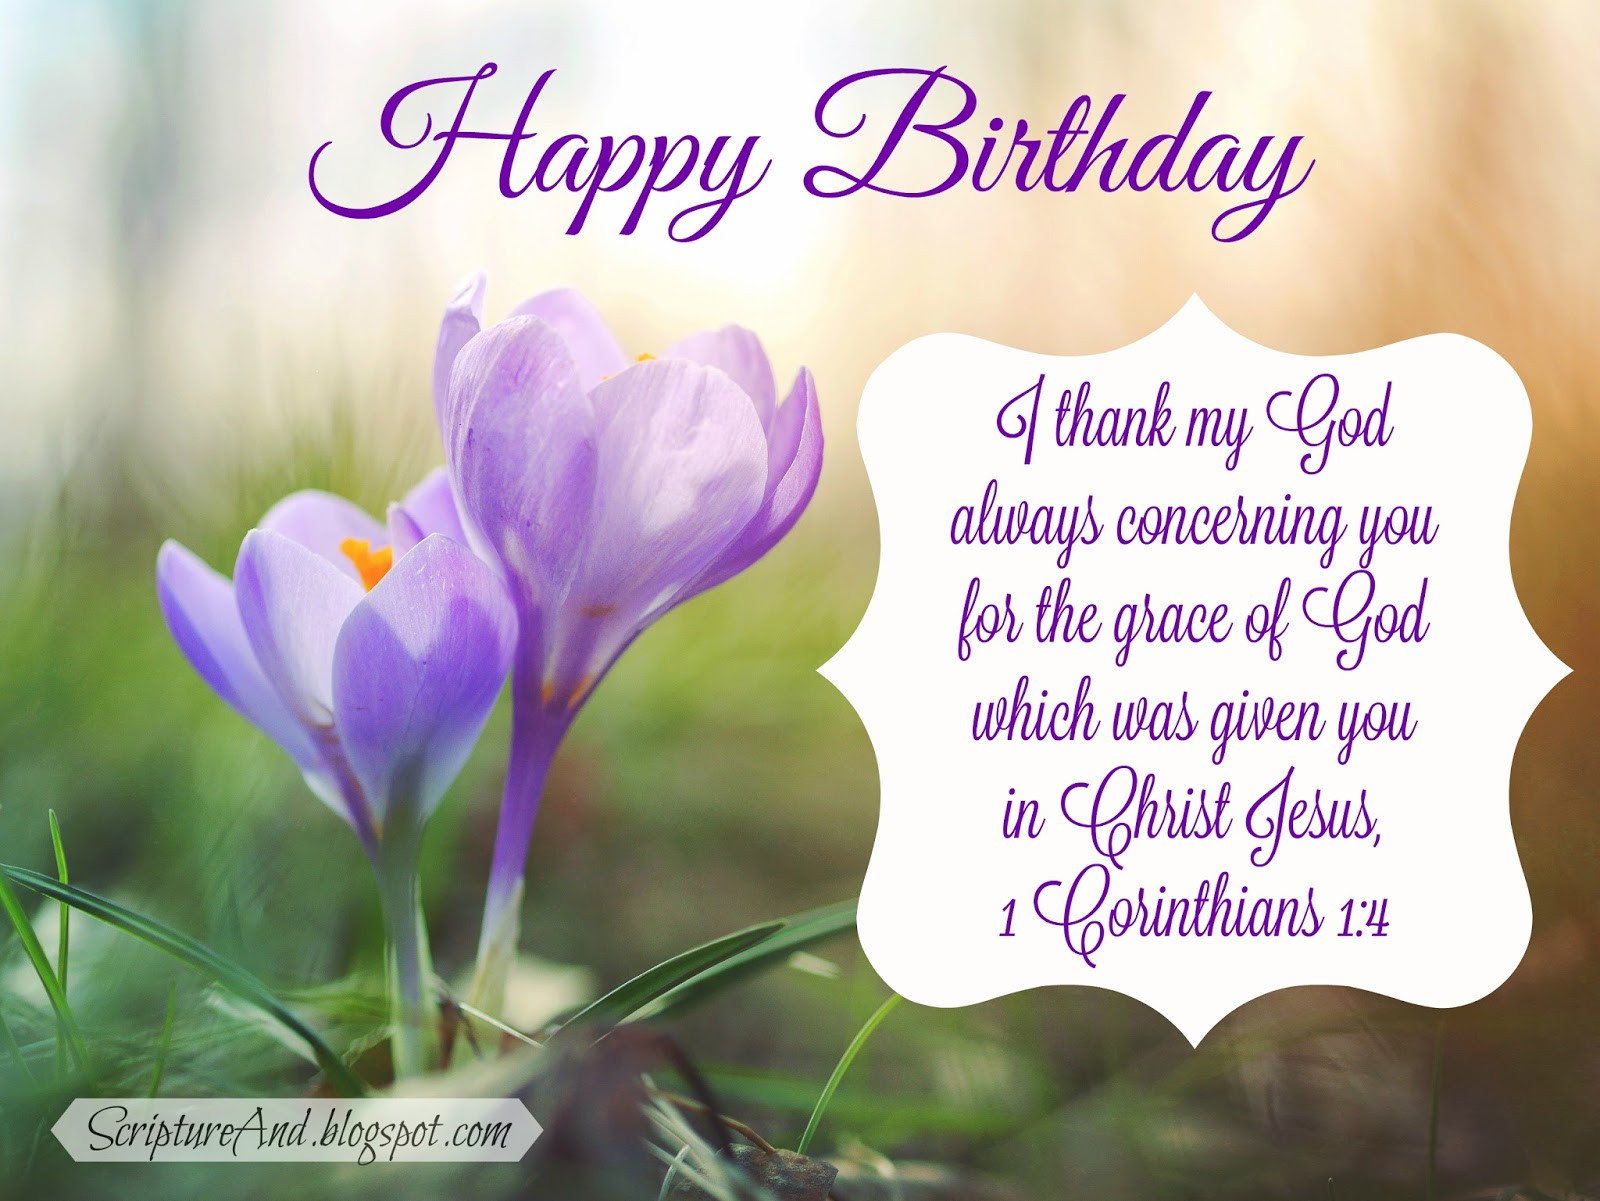 Happy Birthday Christian Quote  Scripture and Free Birthday with Bible Verses